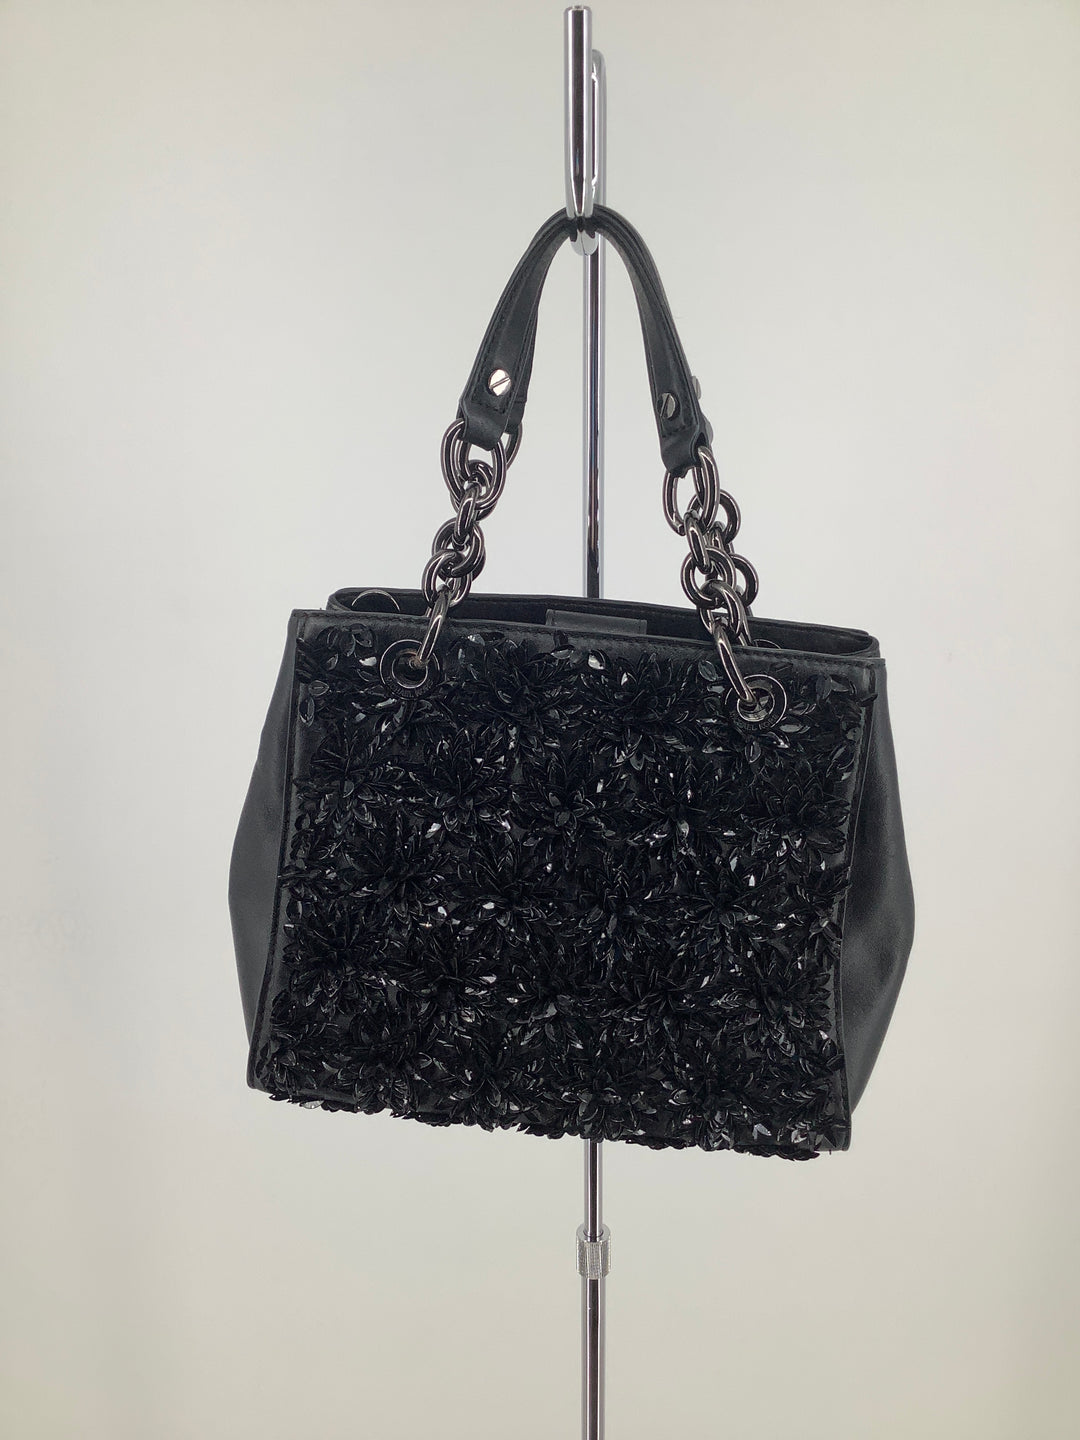 Primary Photo - brand: michael kors , style: handbag designer , color: black , size: small , sku: 105-2768-27455, missing long strap